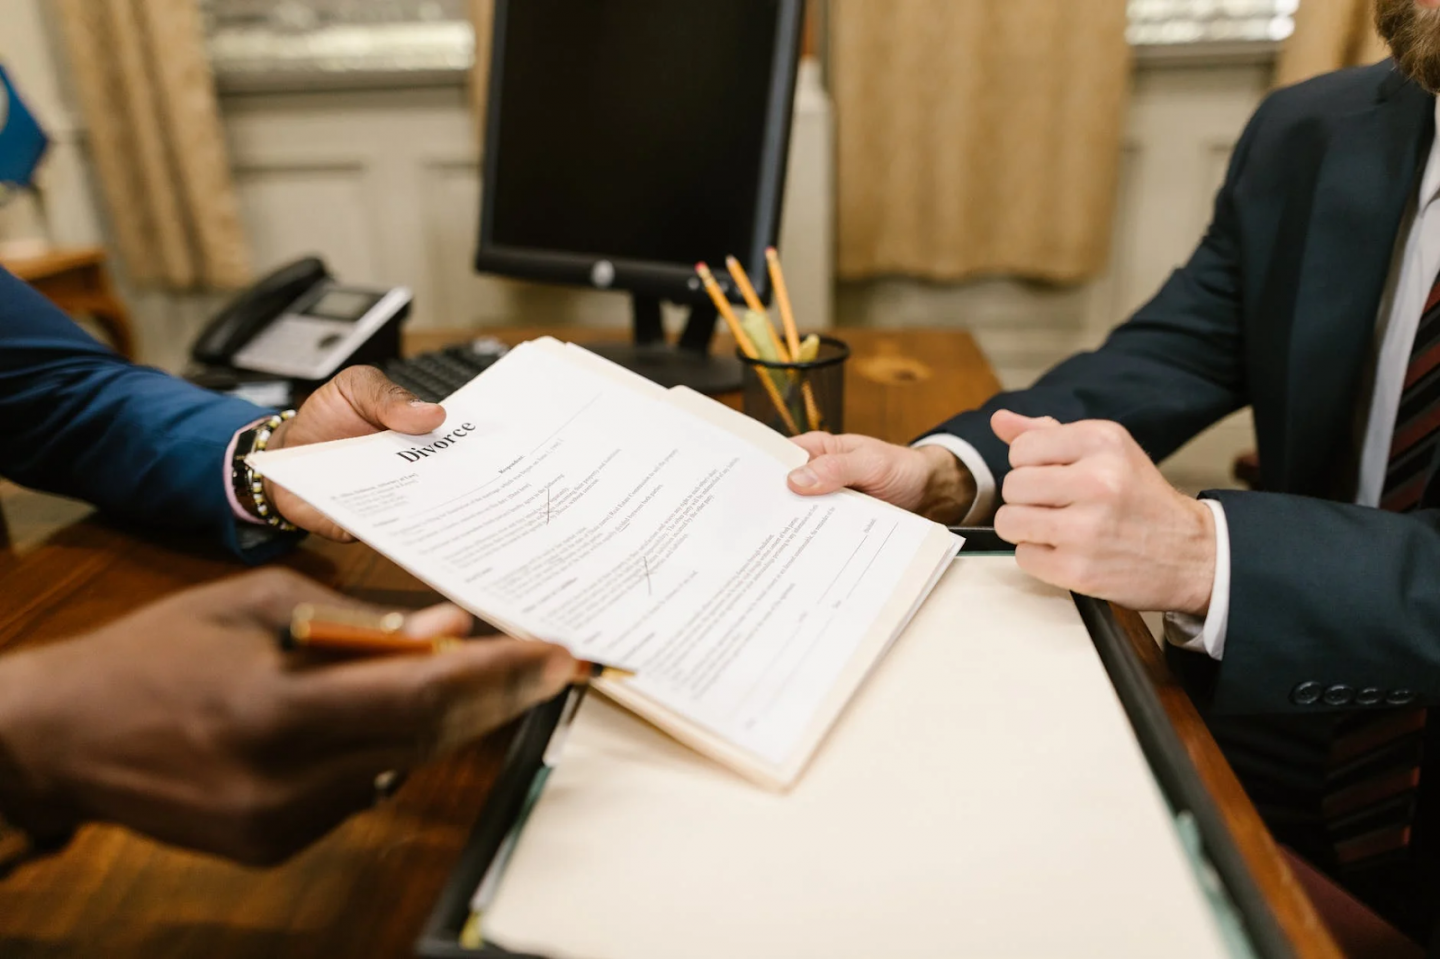 6 Important Qualities To Look For In A Lawyer